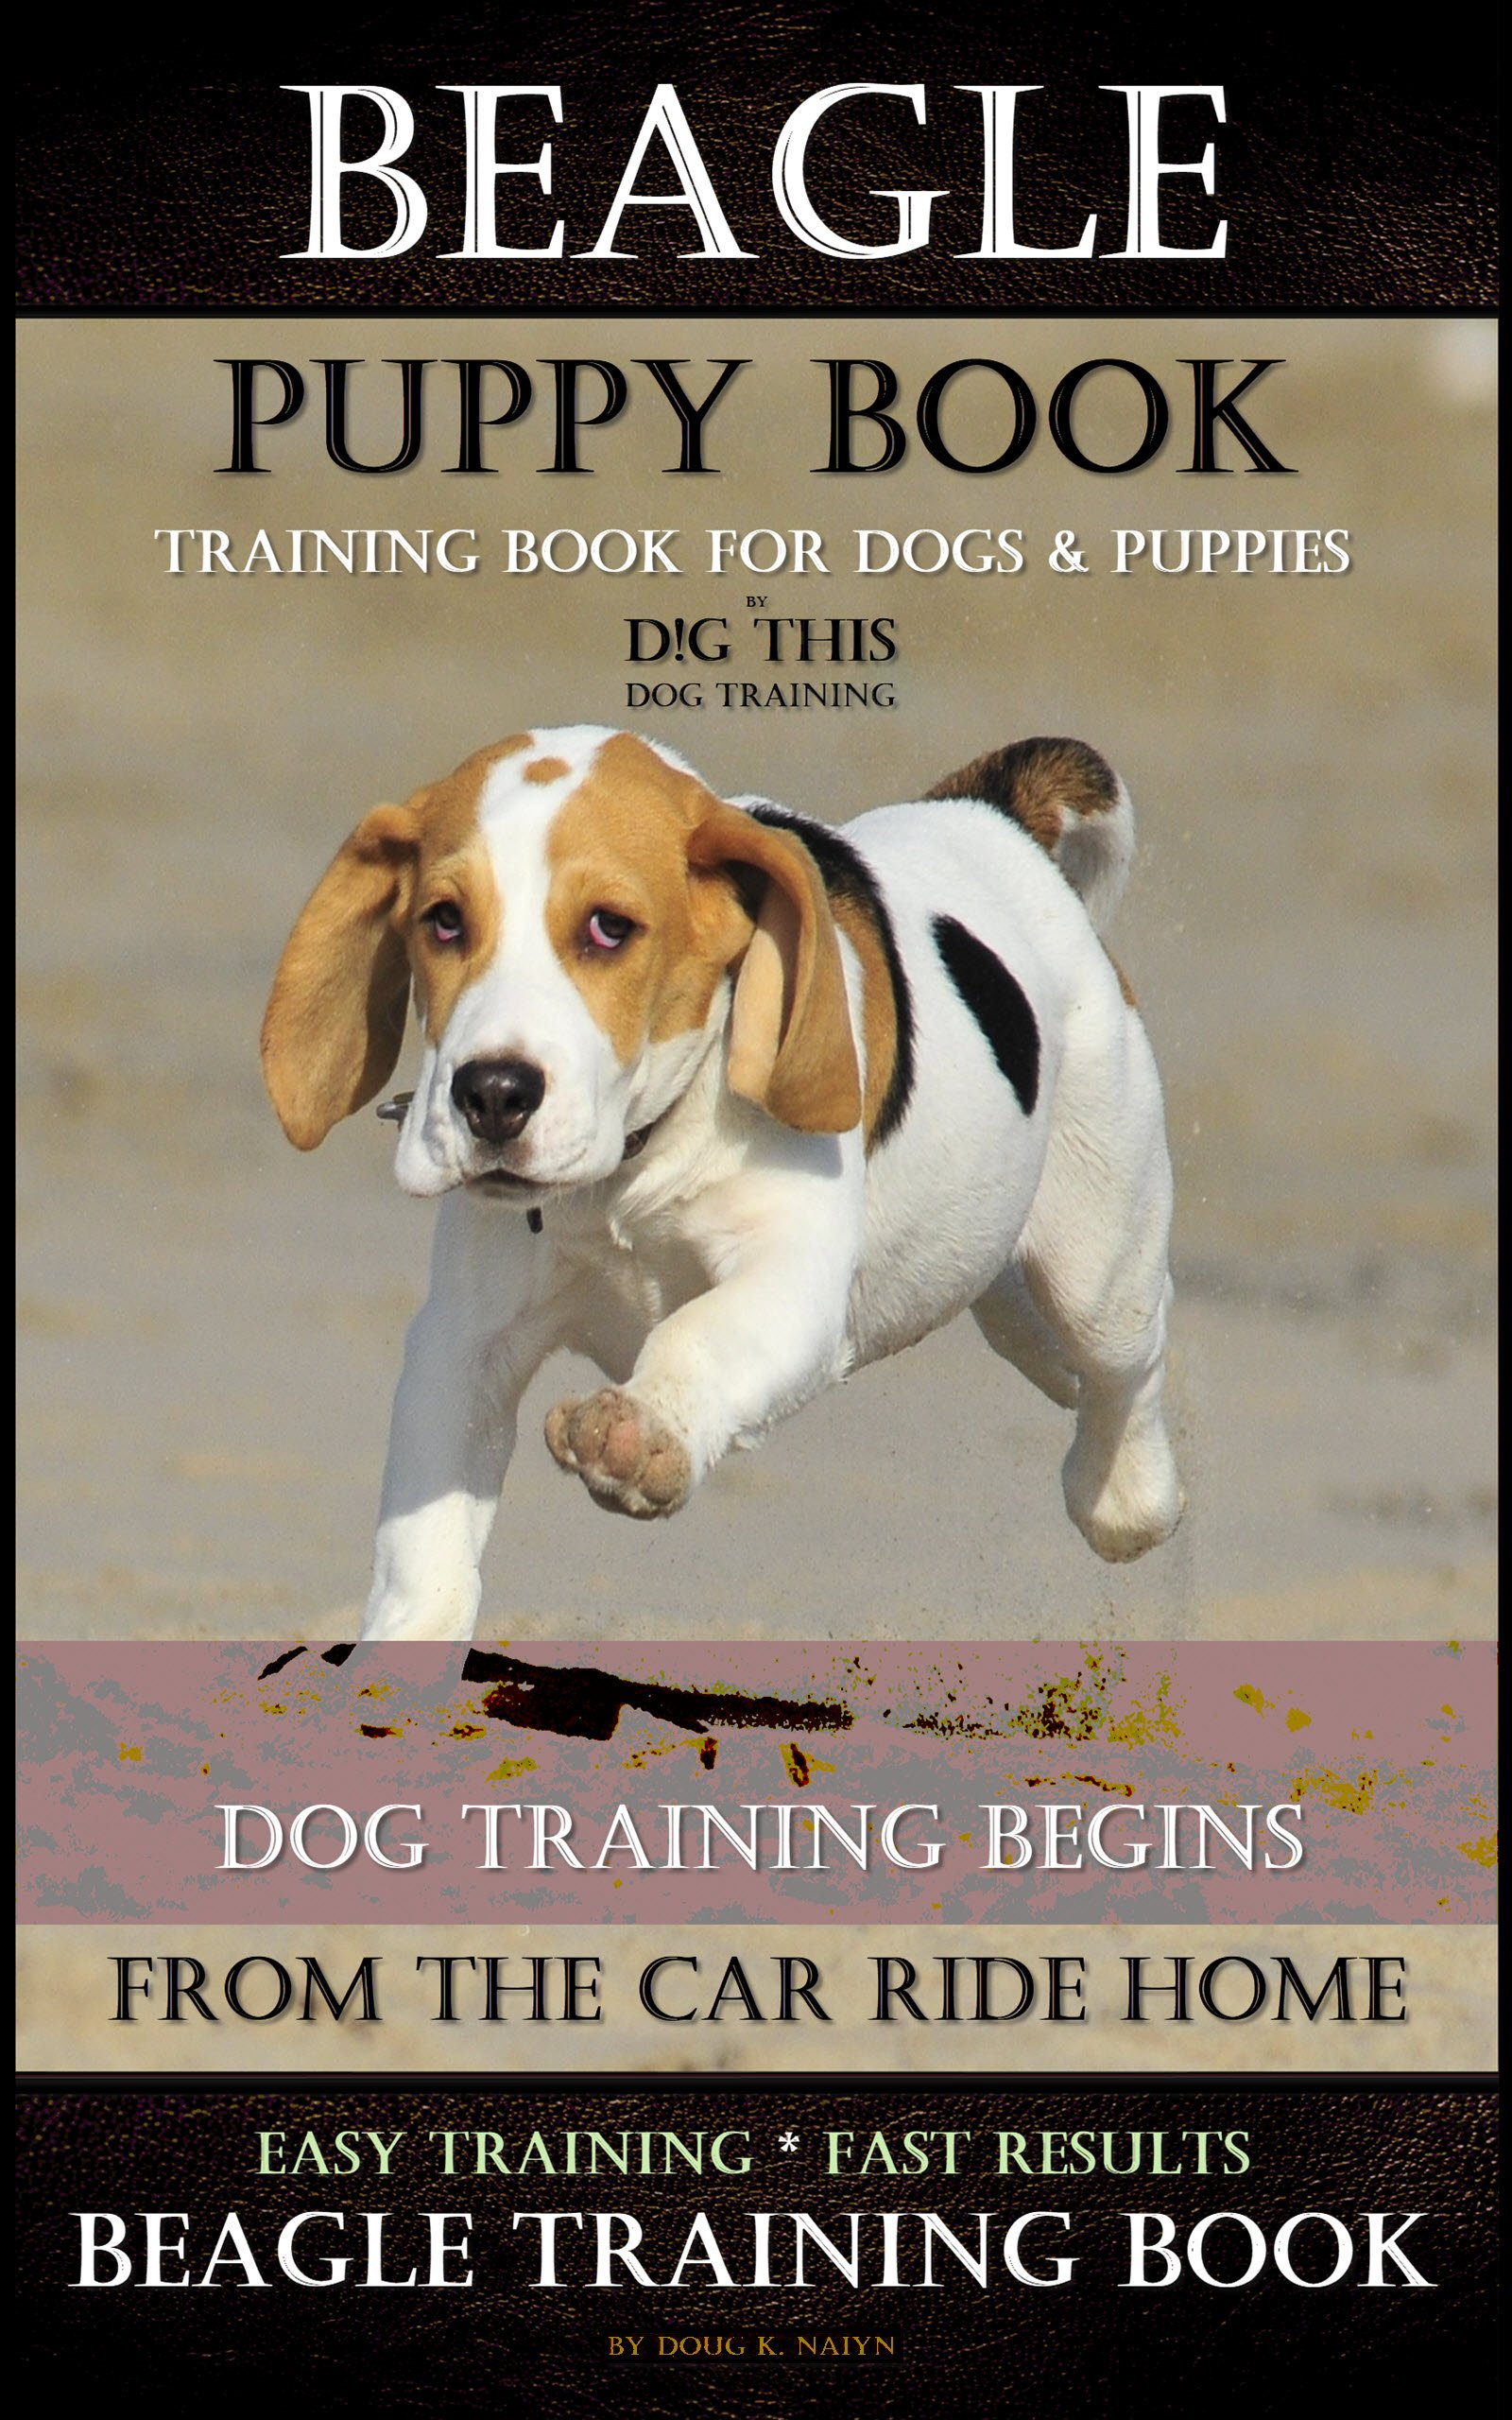 Beagle Puppy Book Training Book for Dogs & Puppies By D!G THIS DOG Training: Dog Training Begins From the Car Ride Home…